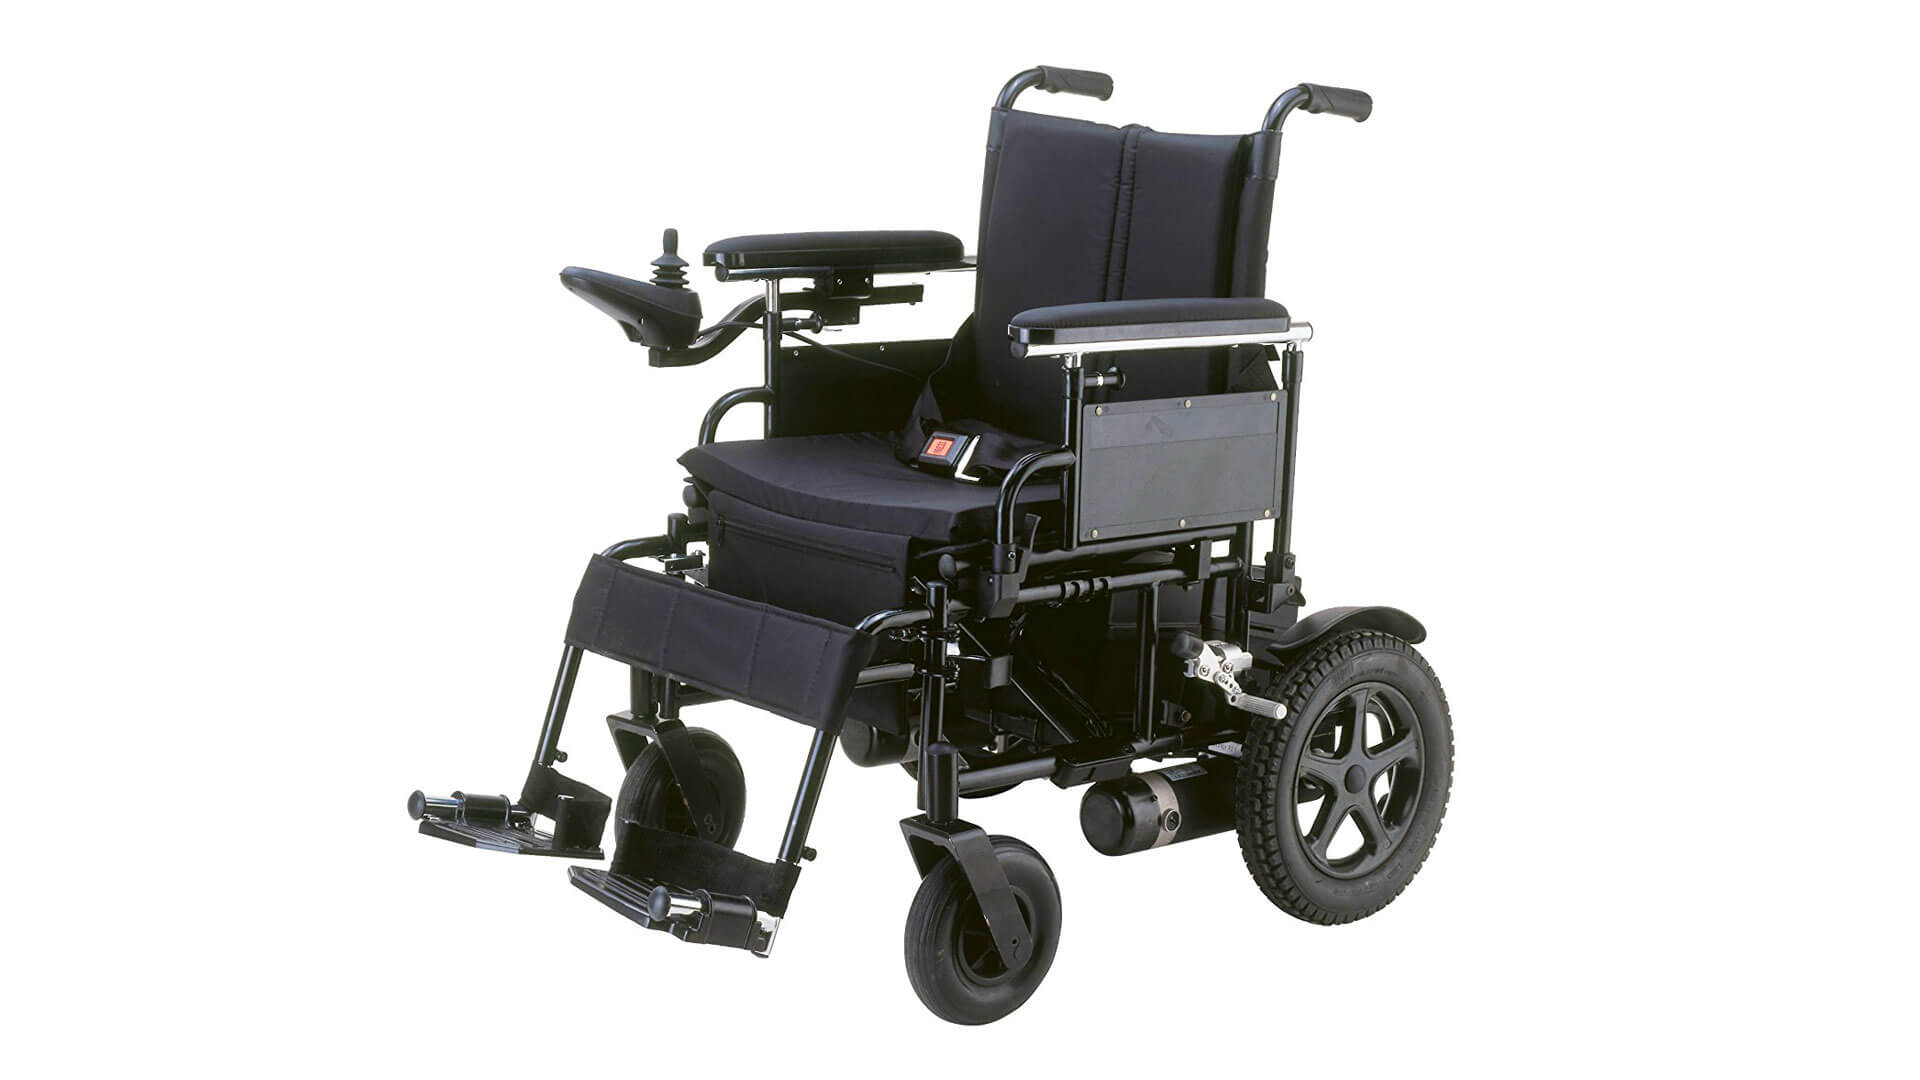 wheelchair purchase little girls vanity table and chair best wheelchairs 2018 choose easy between these top 3 models